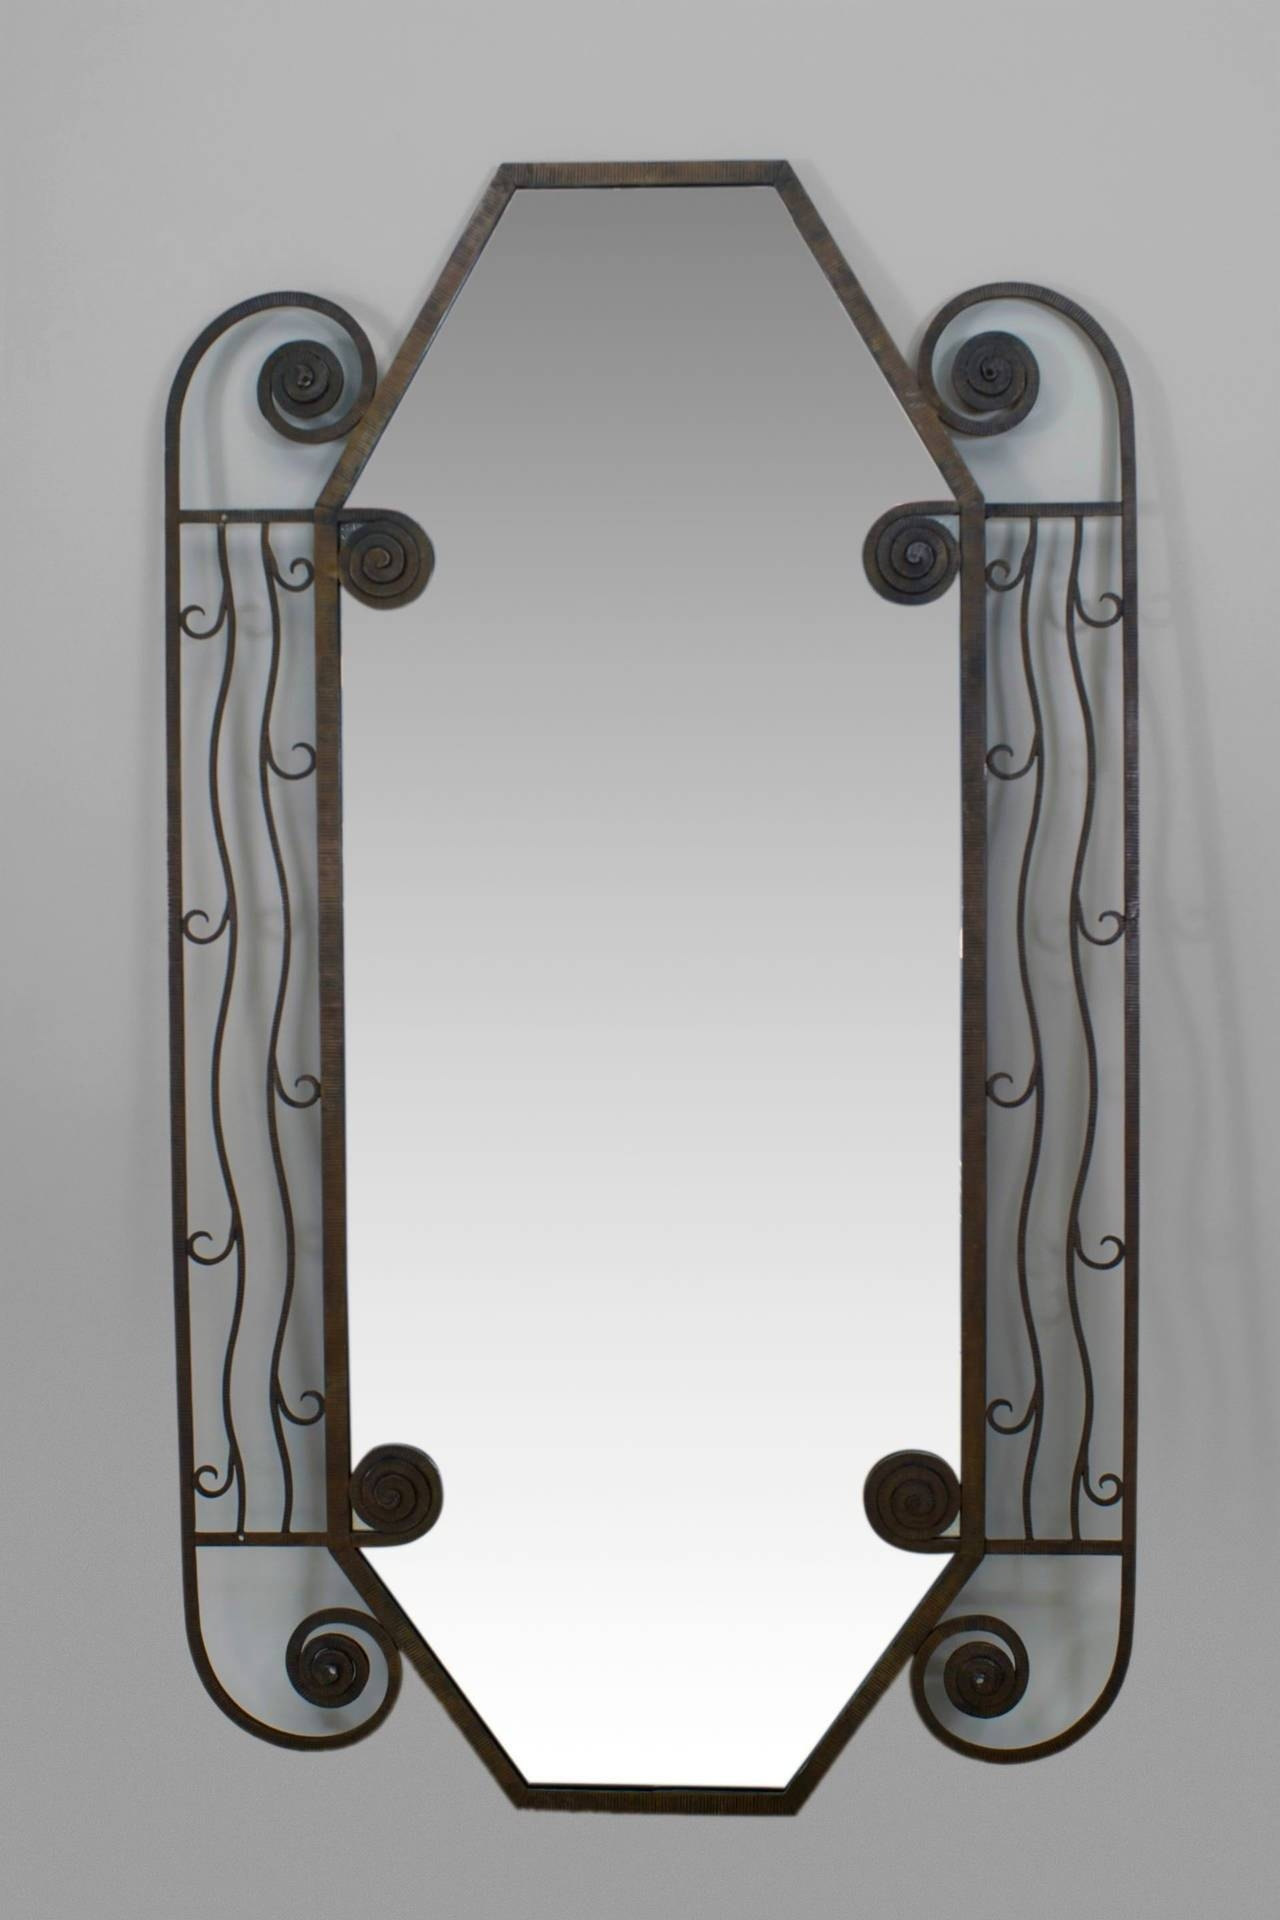 1930's French Art Deco Iron Wall Mirror For Sale At 1Stdibs Pertaining To French Wall Mirrors (View 1 of 25)